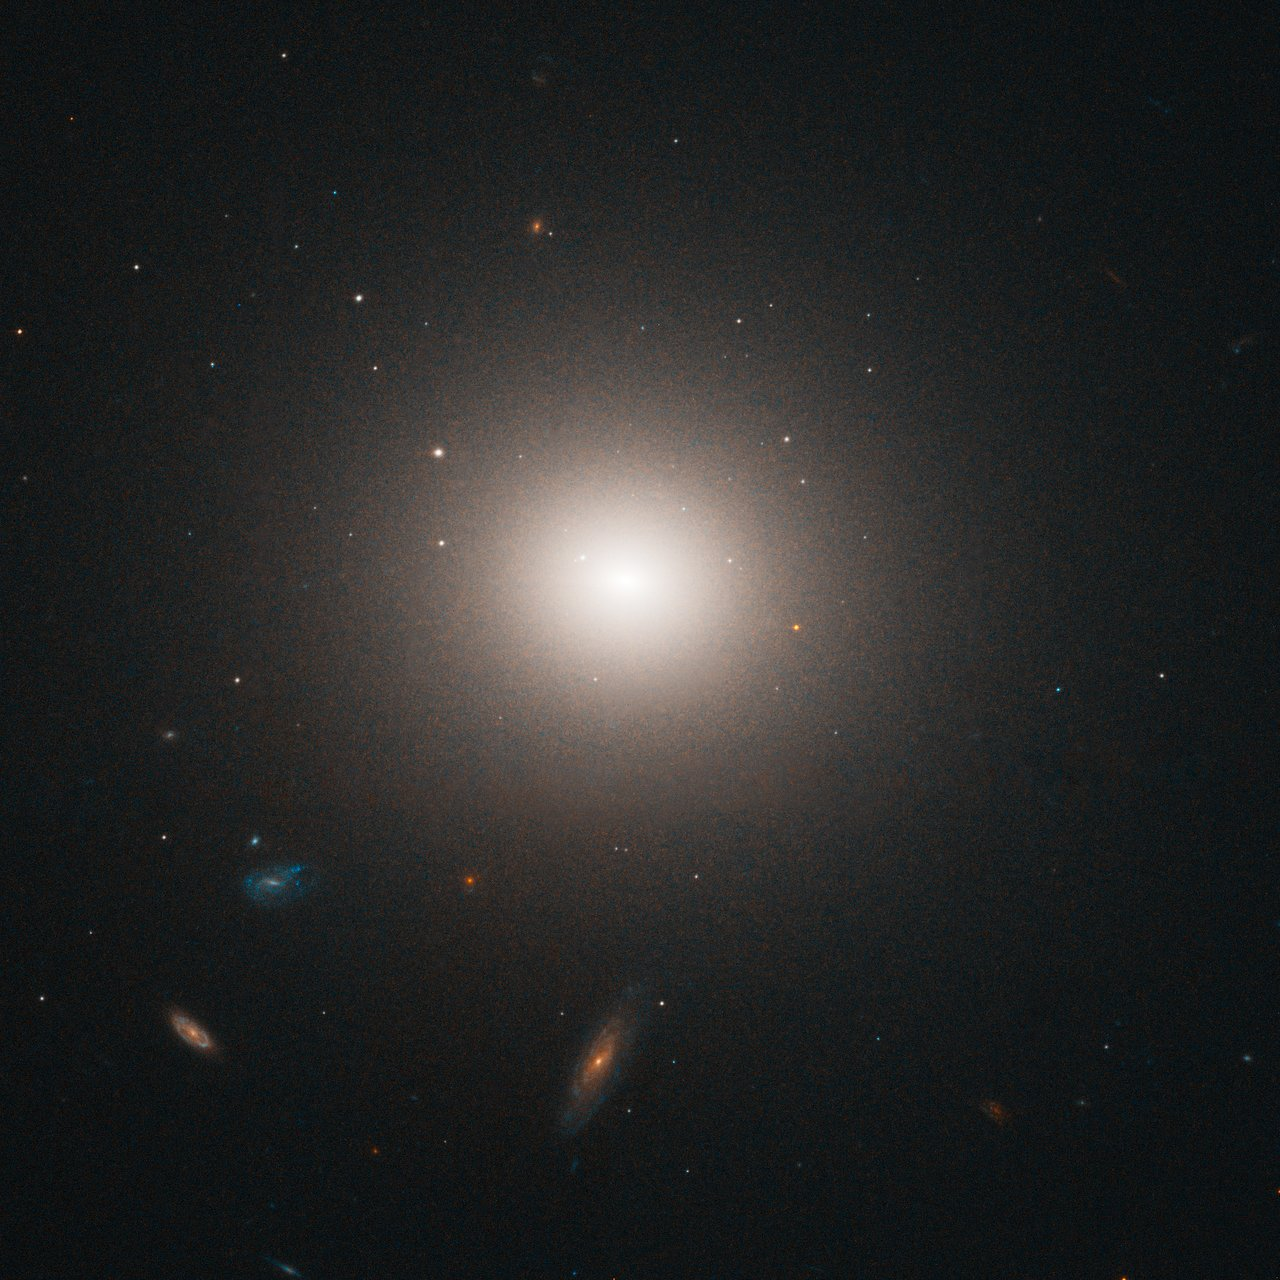 NGC 4458 in the Virgo cluster of galaxies